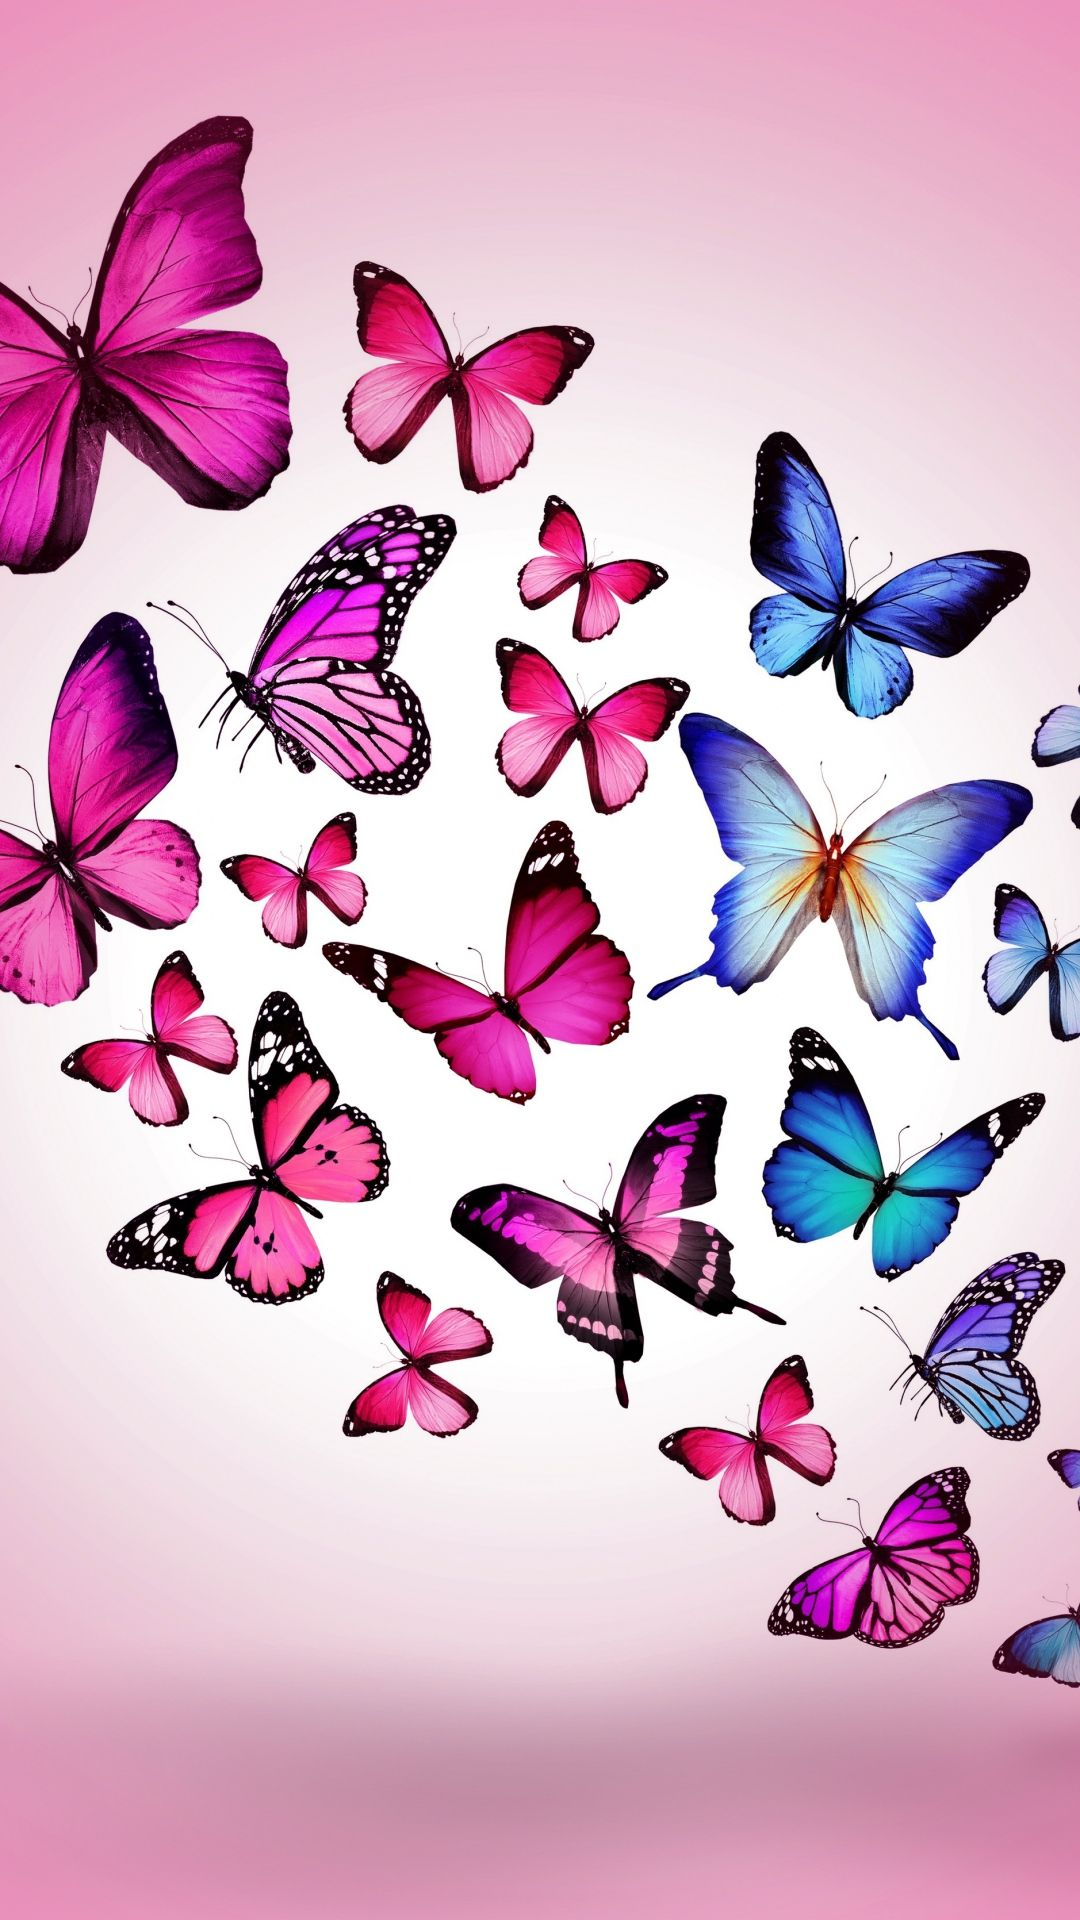 Butterfly Drawing Flying Colorful Background Pink Iphone 6 Wallpaper Download Iphone Wallpapers I Butterfly Background Butterfly Wallpaper Butterfly Drawing